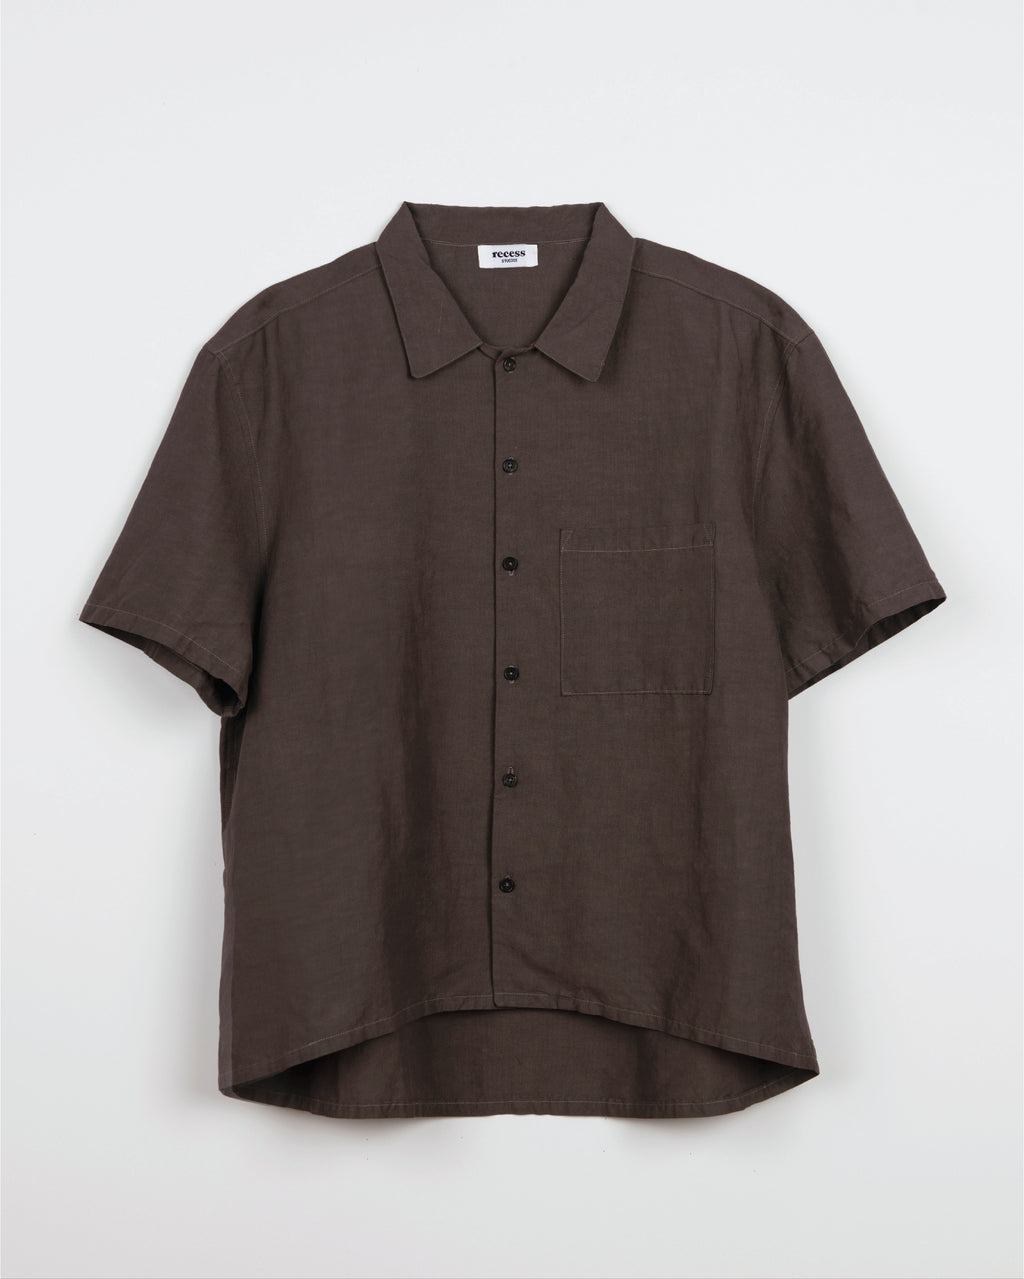 Brown Short Sleeve Button Up